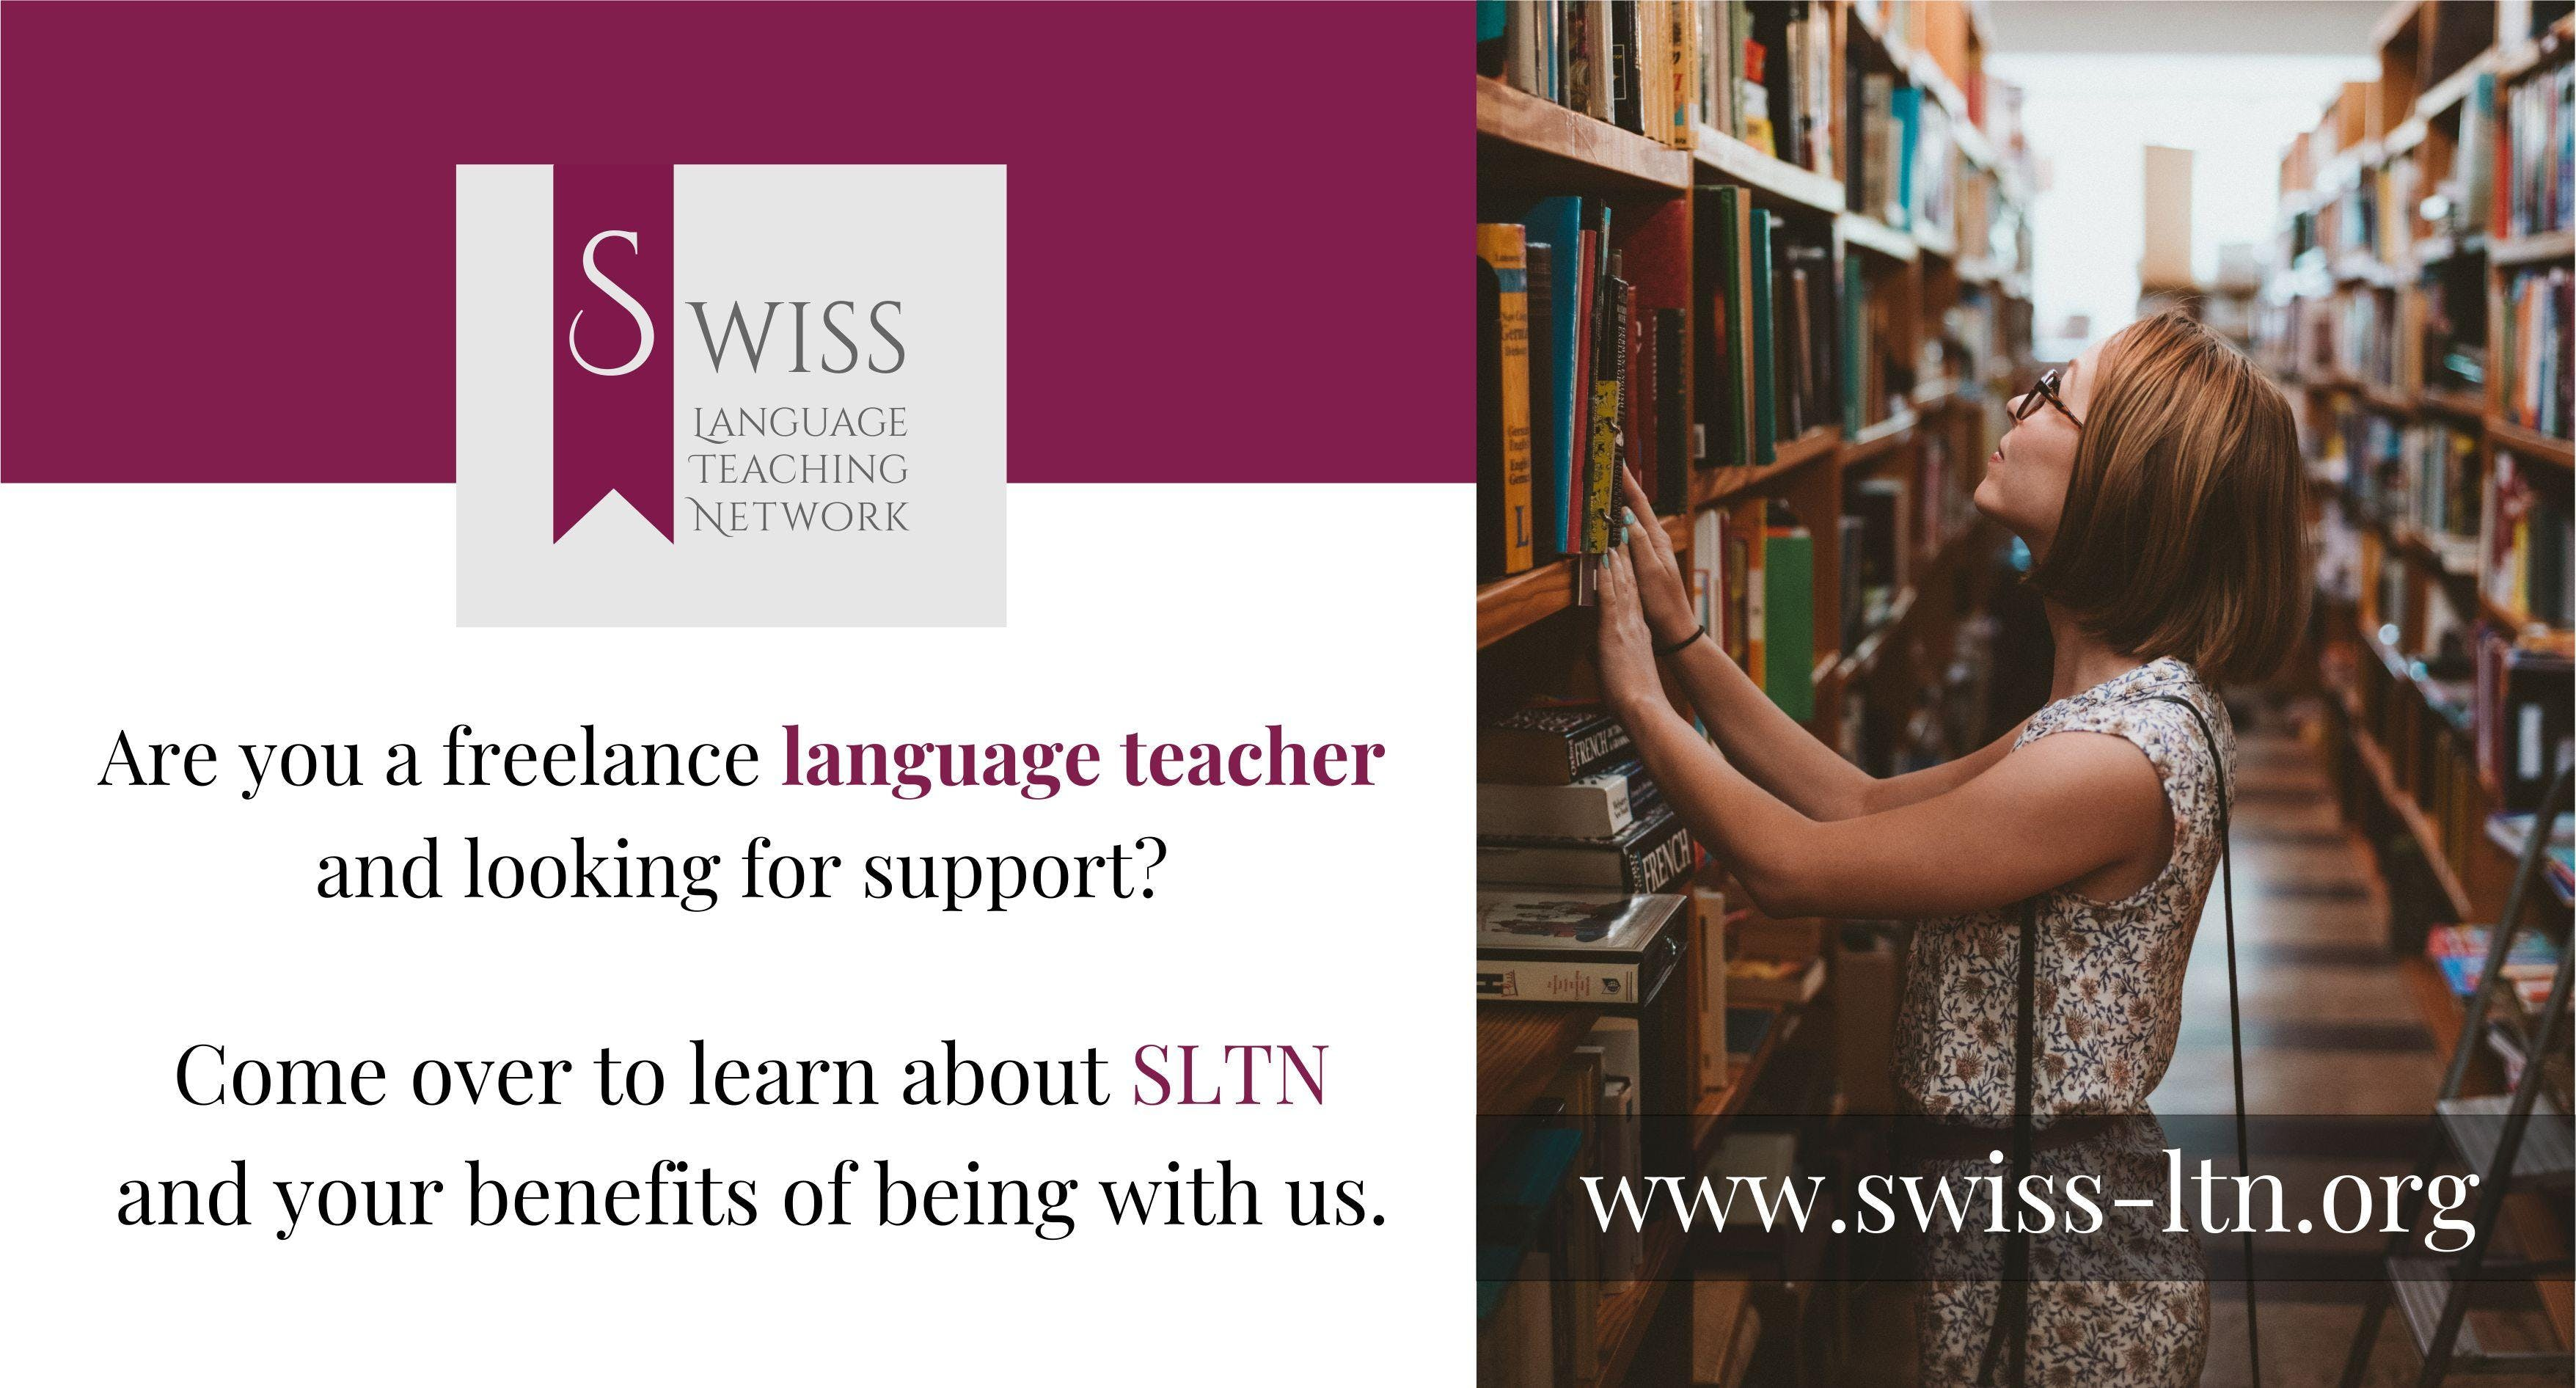 Introductory Session: Swiss Language Teaching Network